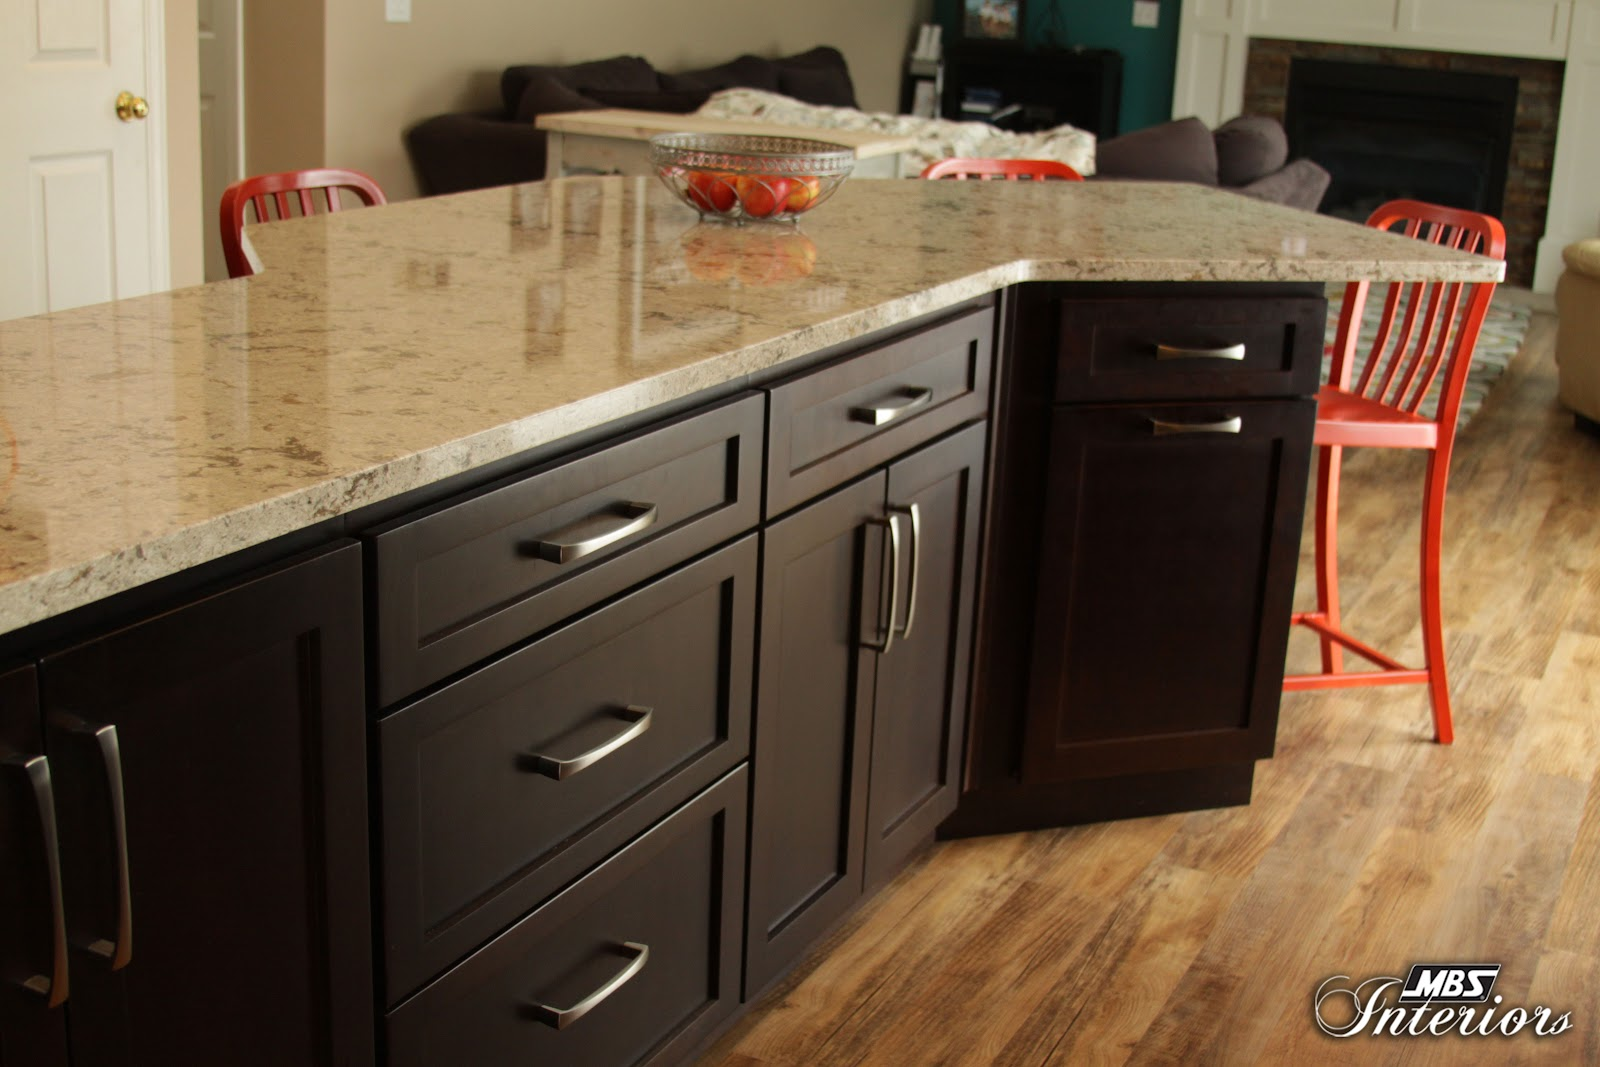 Quartz Runs A Close Second In Popularity To Granite. Plus, Quartz  Countertops Are Extremely Resilient And Resistant To Stains, Scratches,  Heat, ...